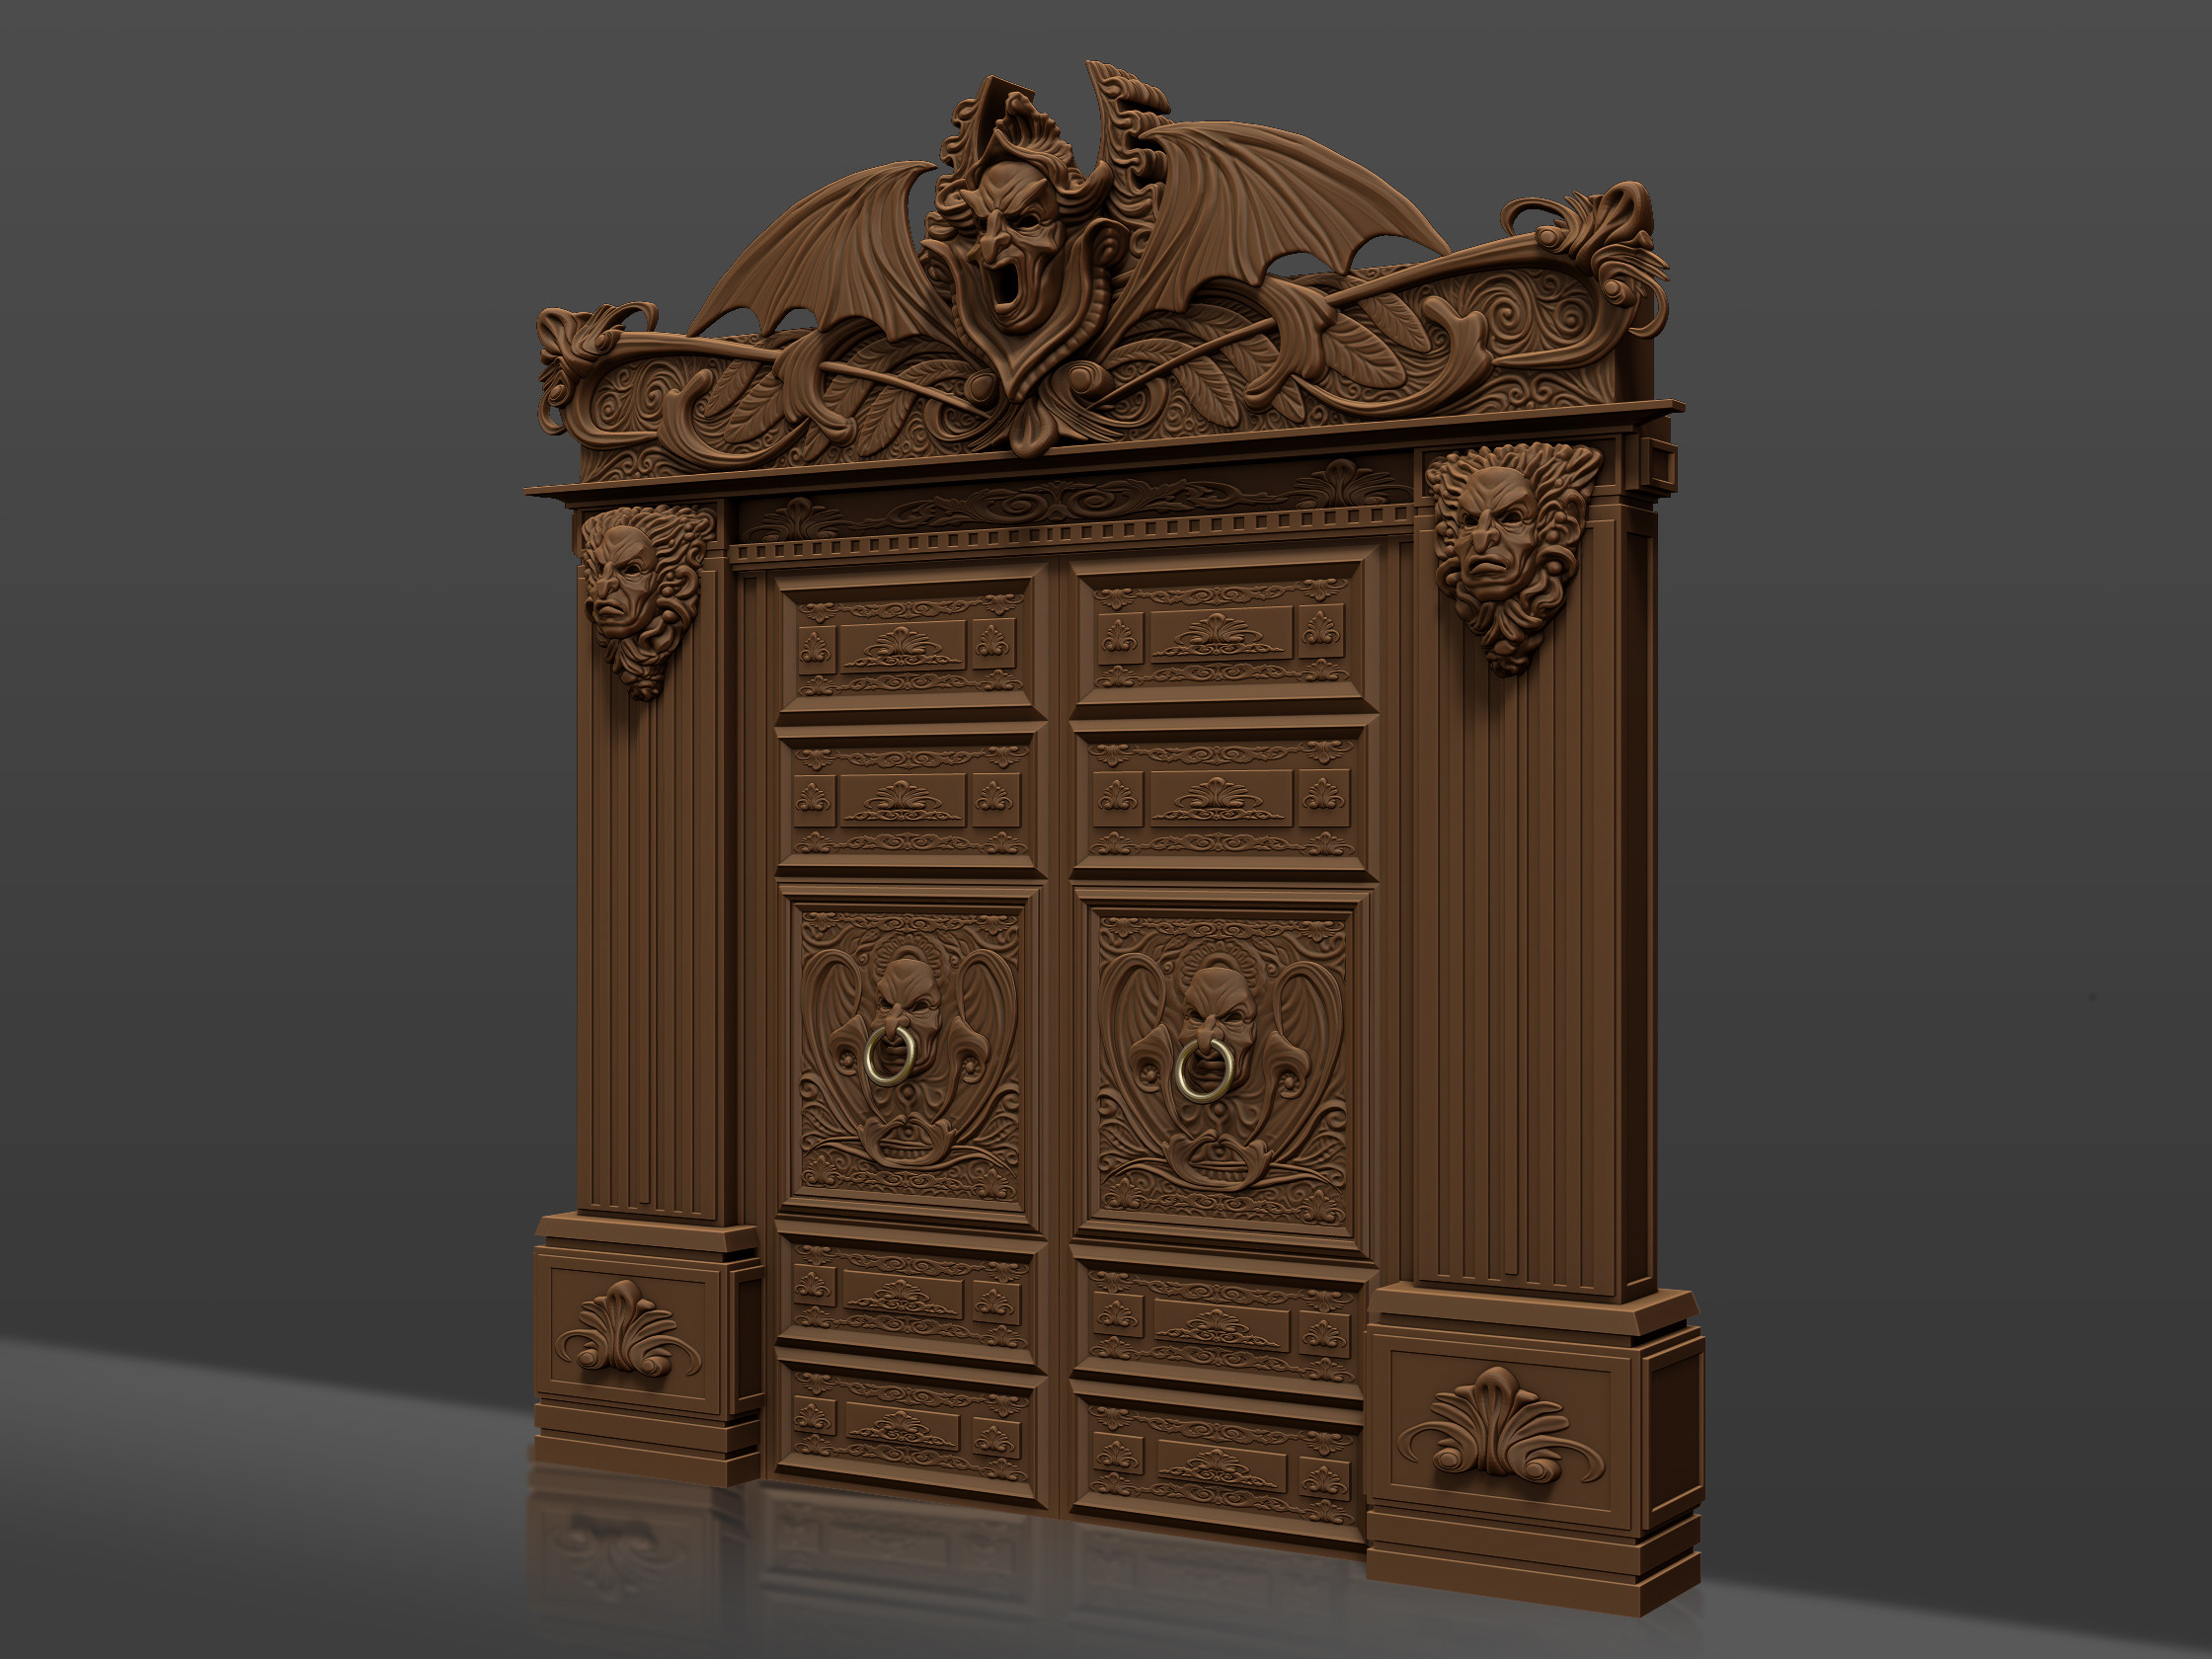 detail of the doorway I sculpted for the scene.